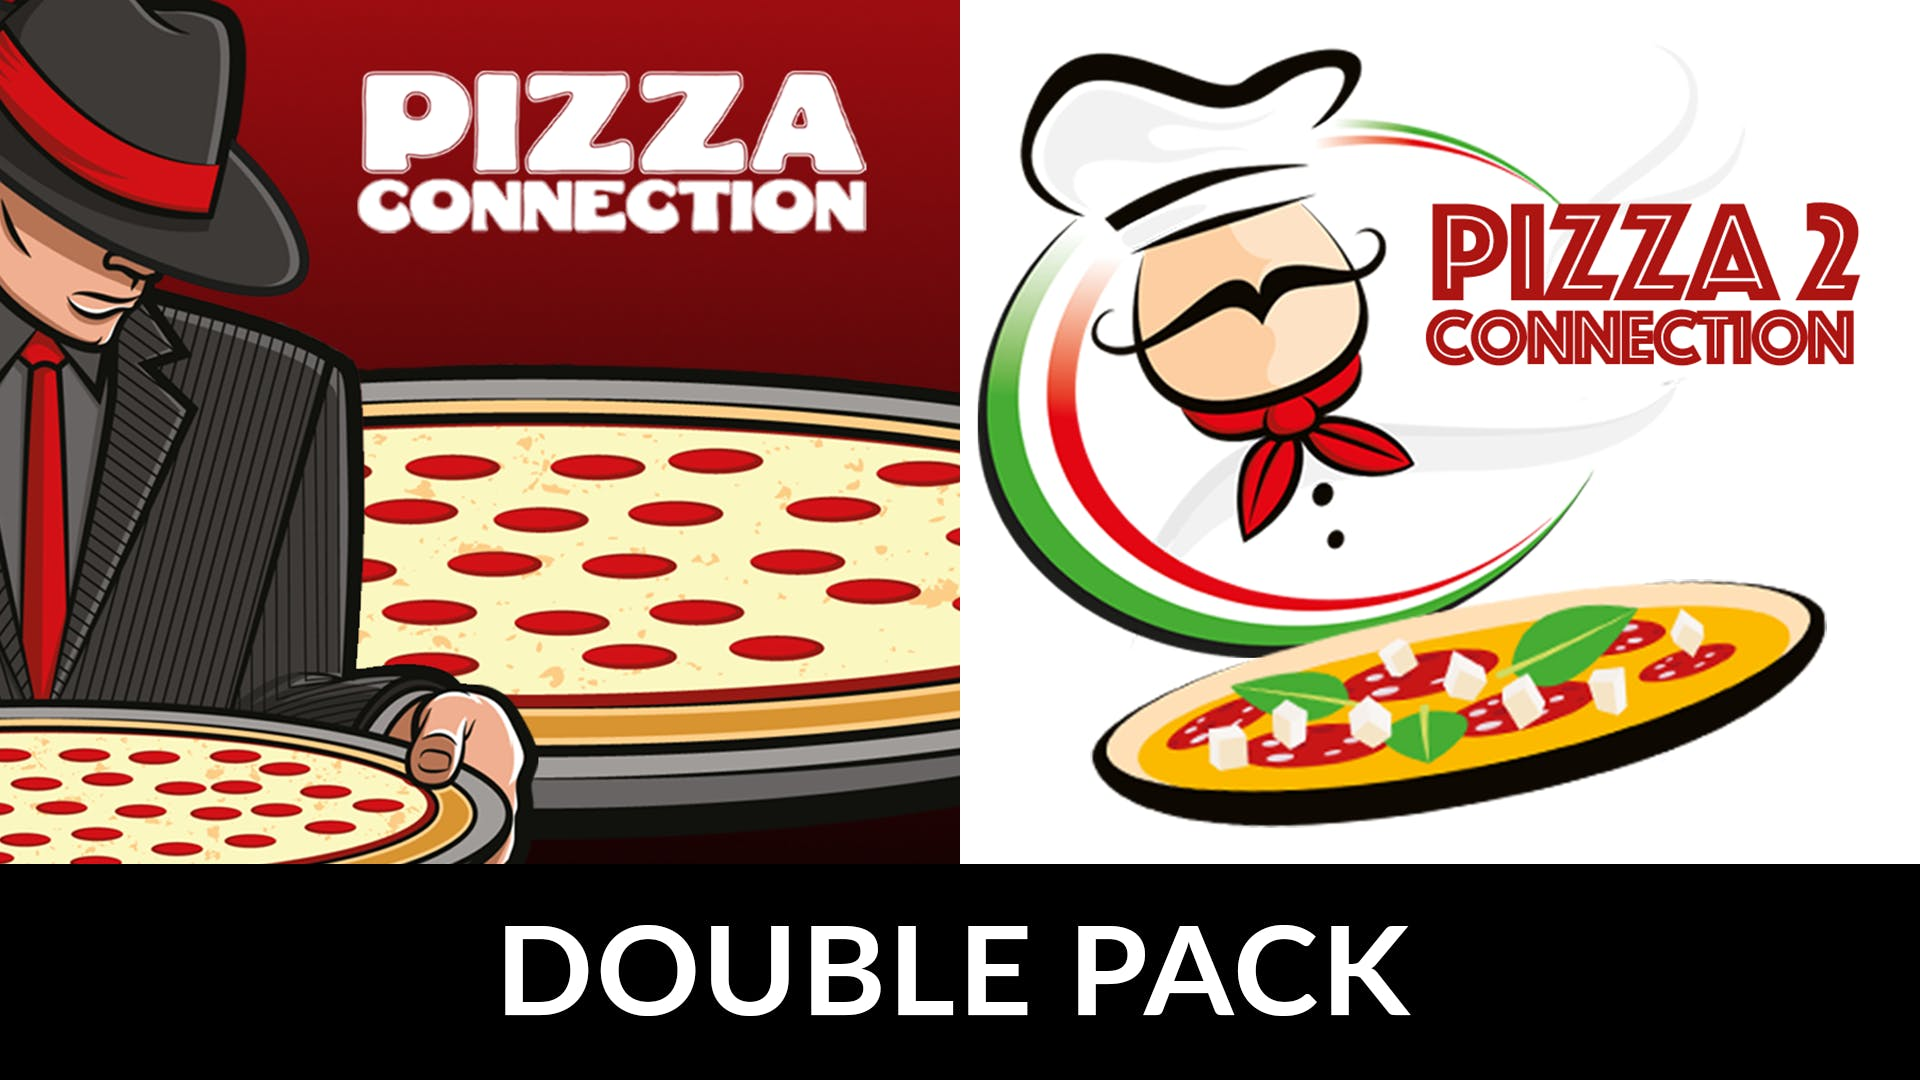 Pizza Connection 1 and 2 Double Pack